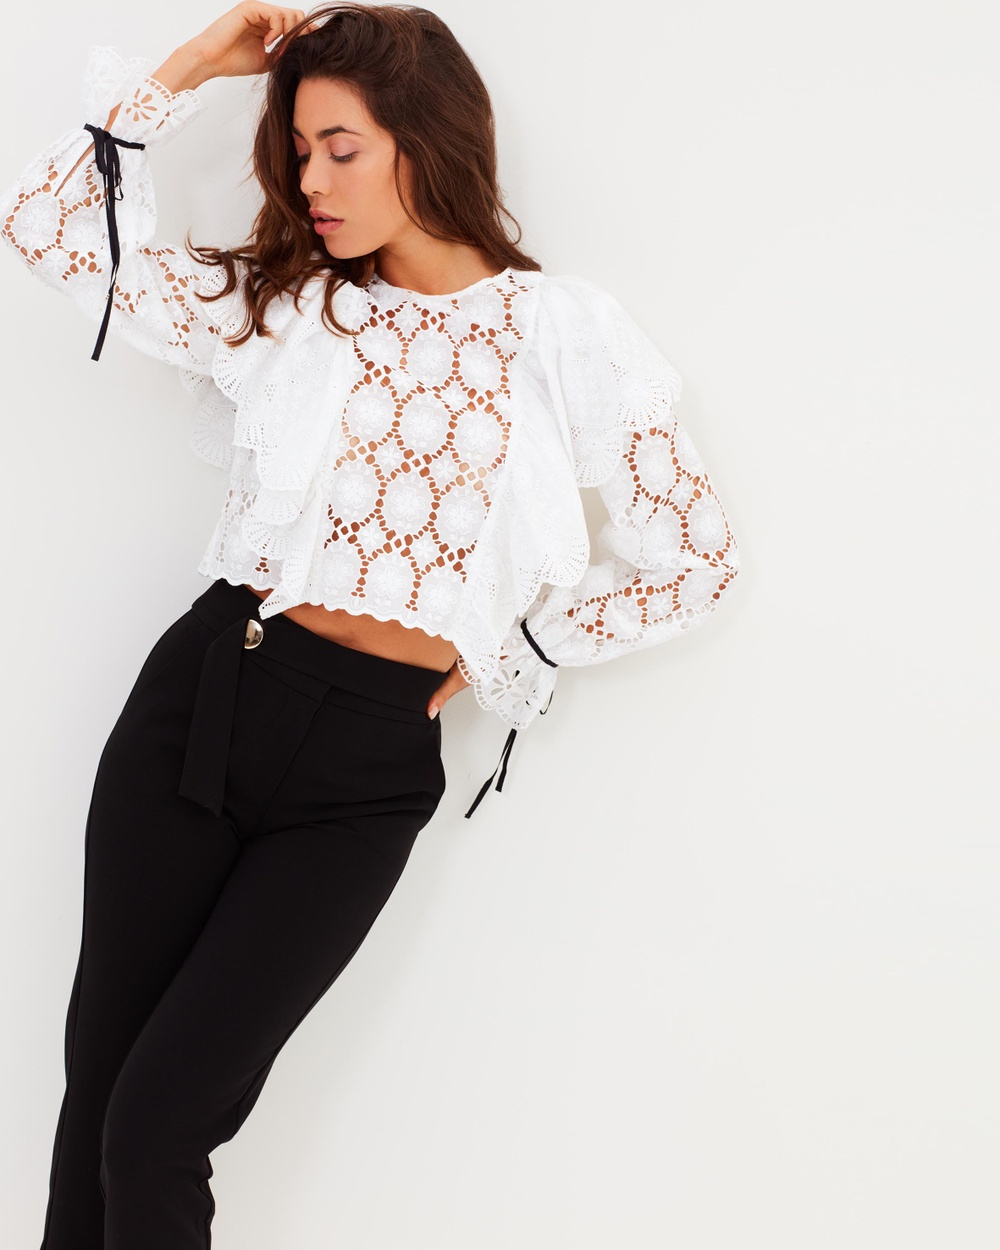 Perseverance Clover Embroidery Anglaise Ruffled Blouse Cropped tops Off-White Clover Embroidery Anglaise Ruffled Blouse